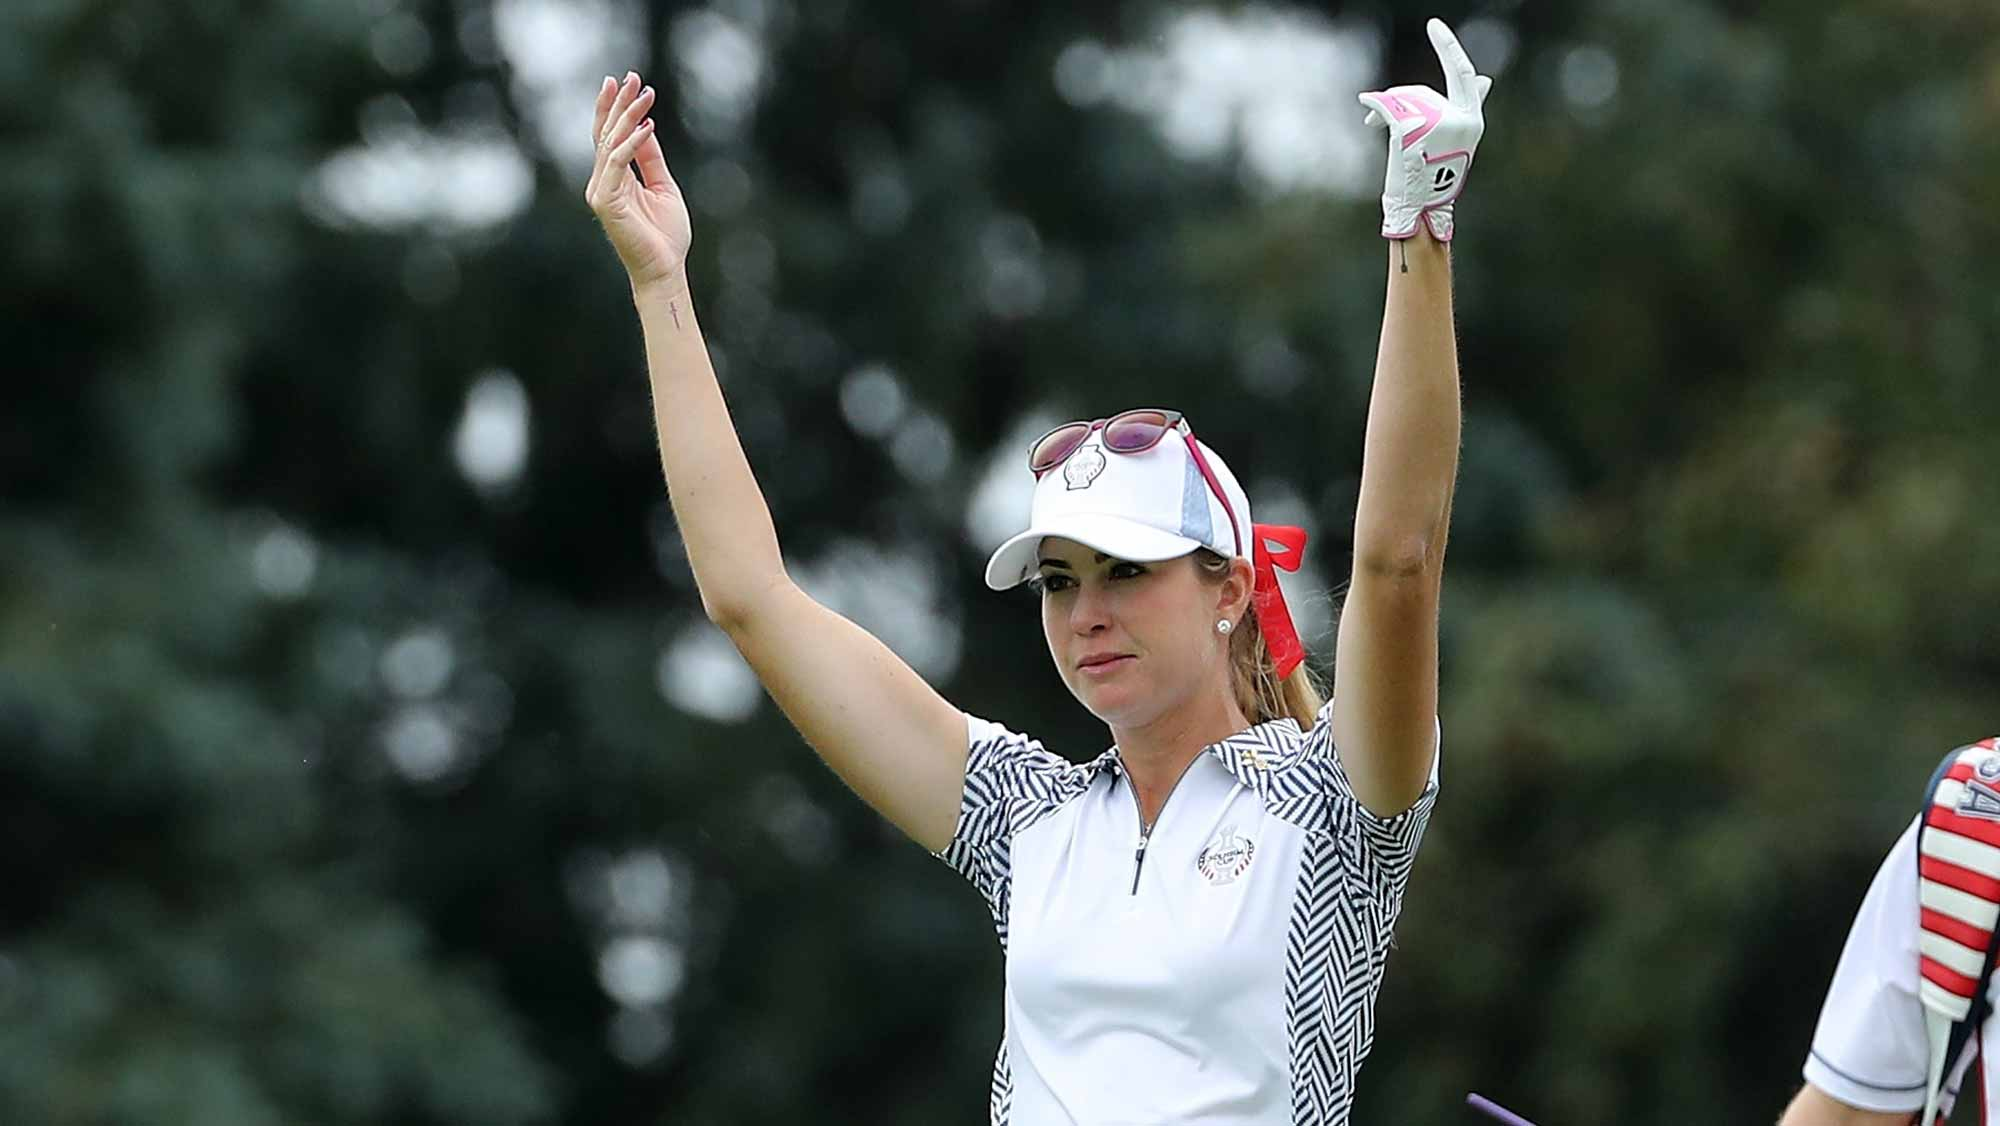 Saturday at Solheim Cup - 5 Things to Know